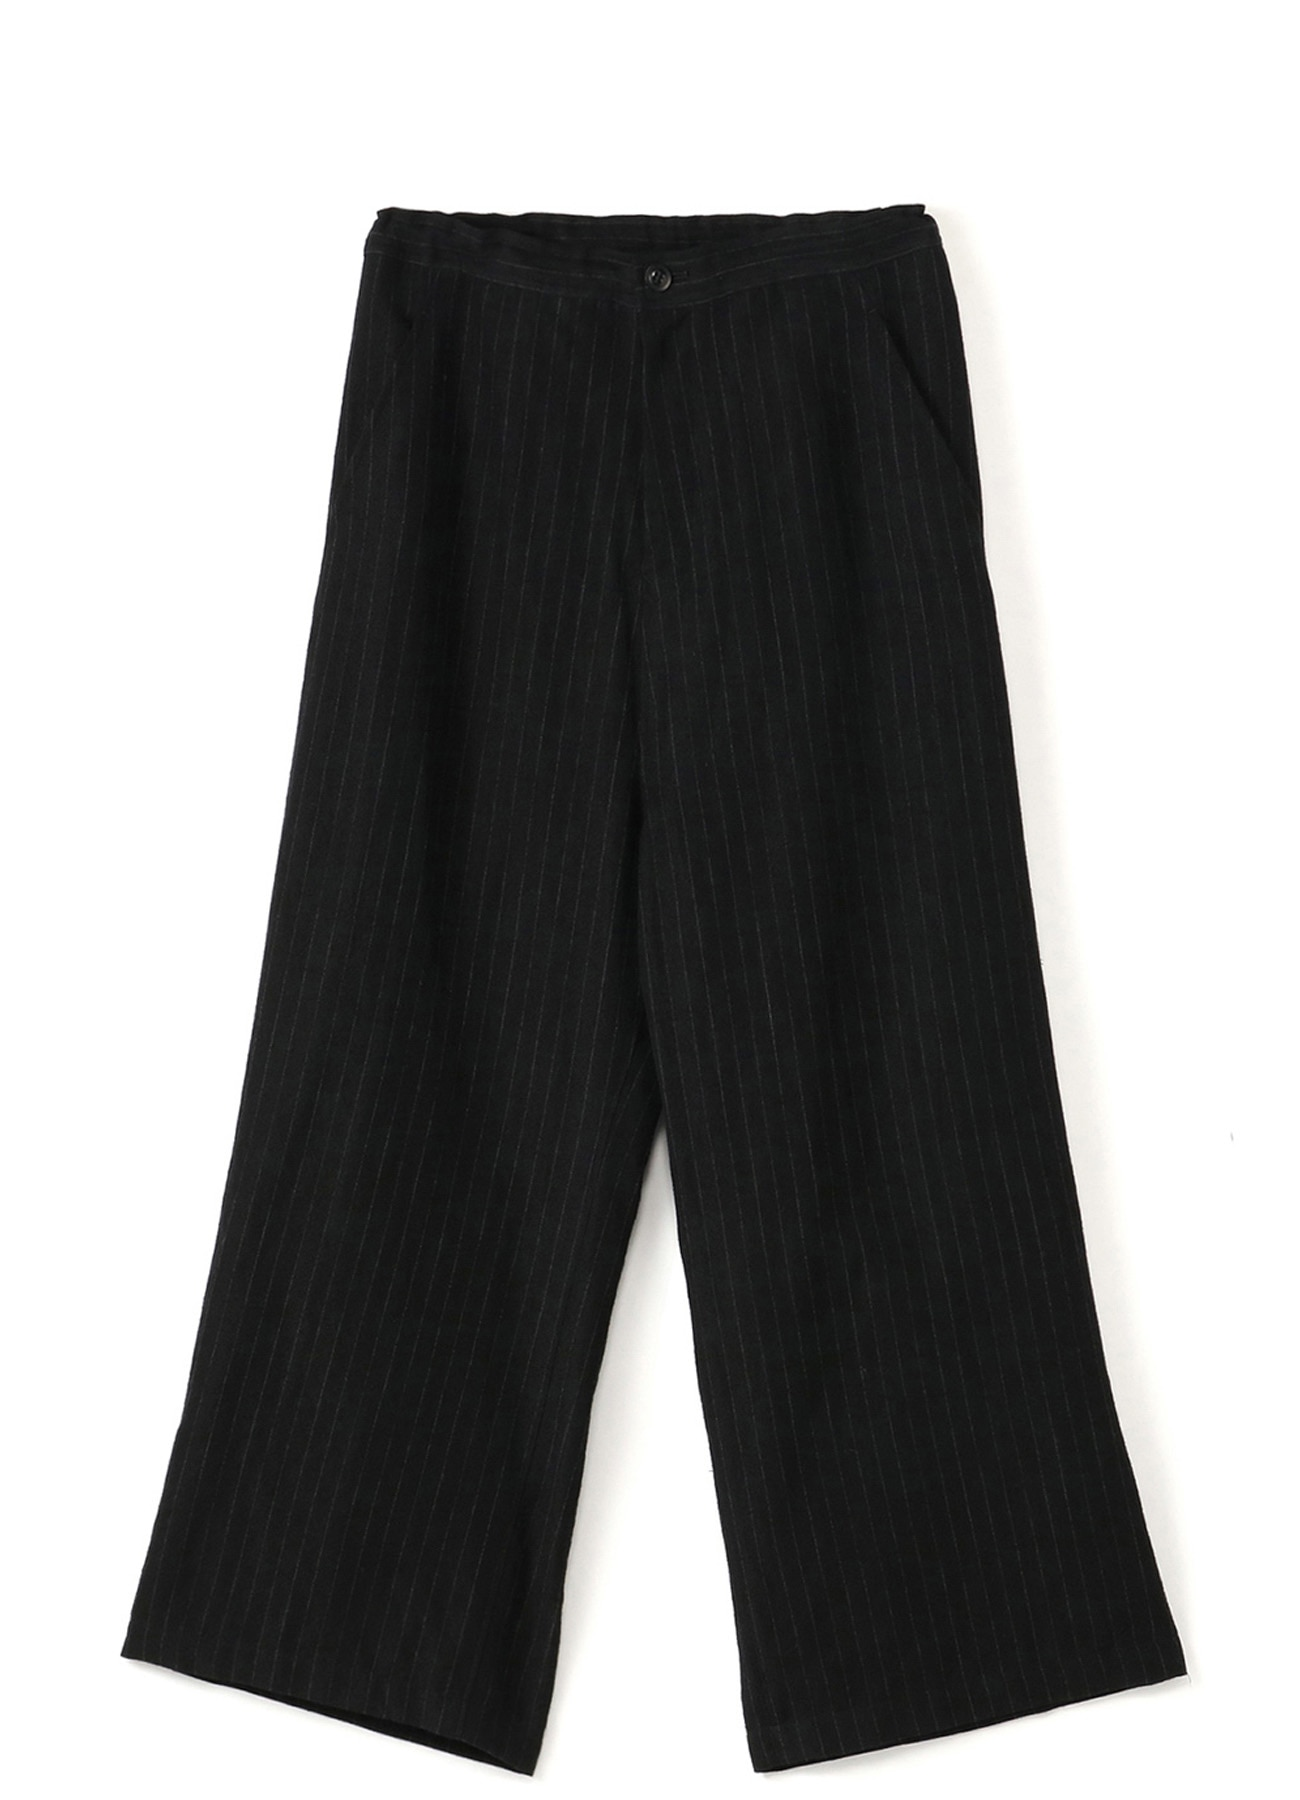 WOOL LINEN PIN STRIPE YARN DYED STRAIGHT THICK PANTS